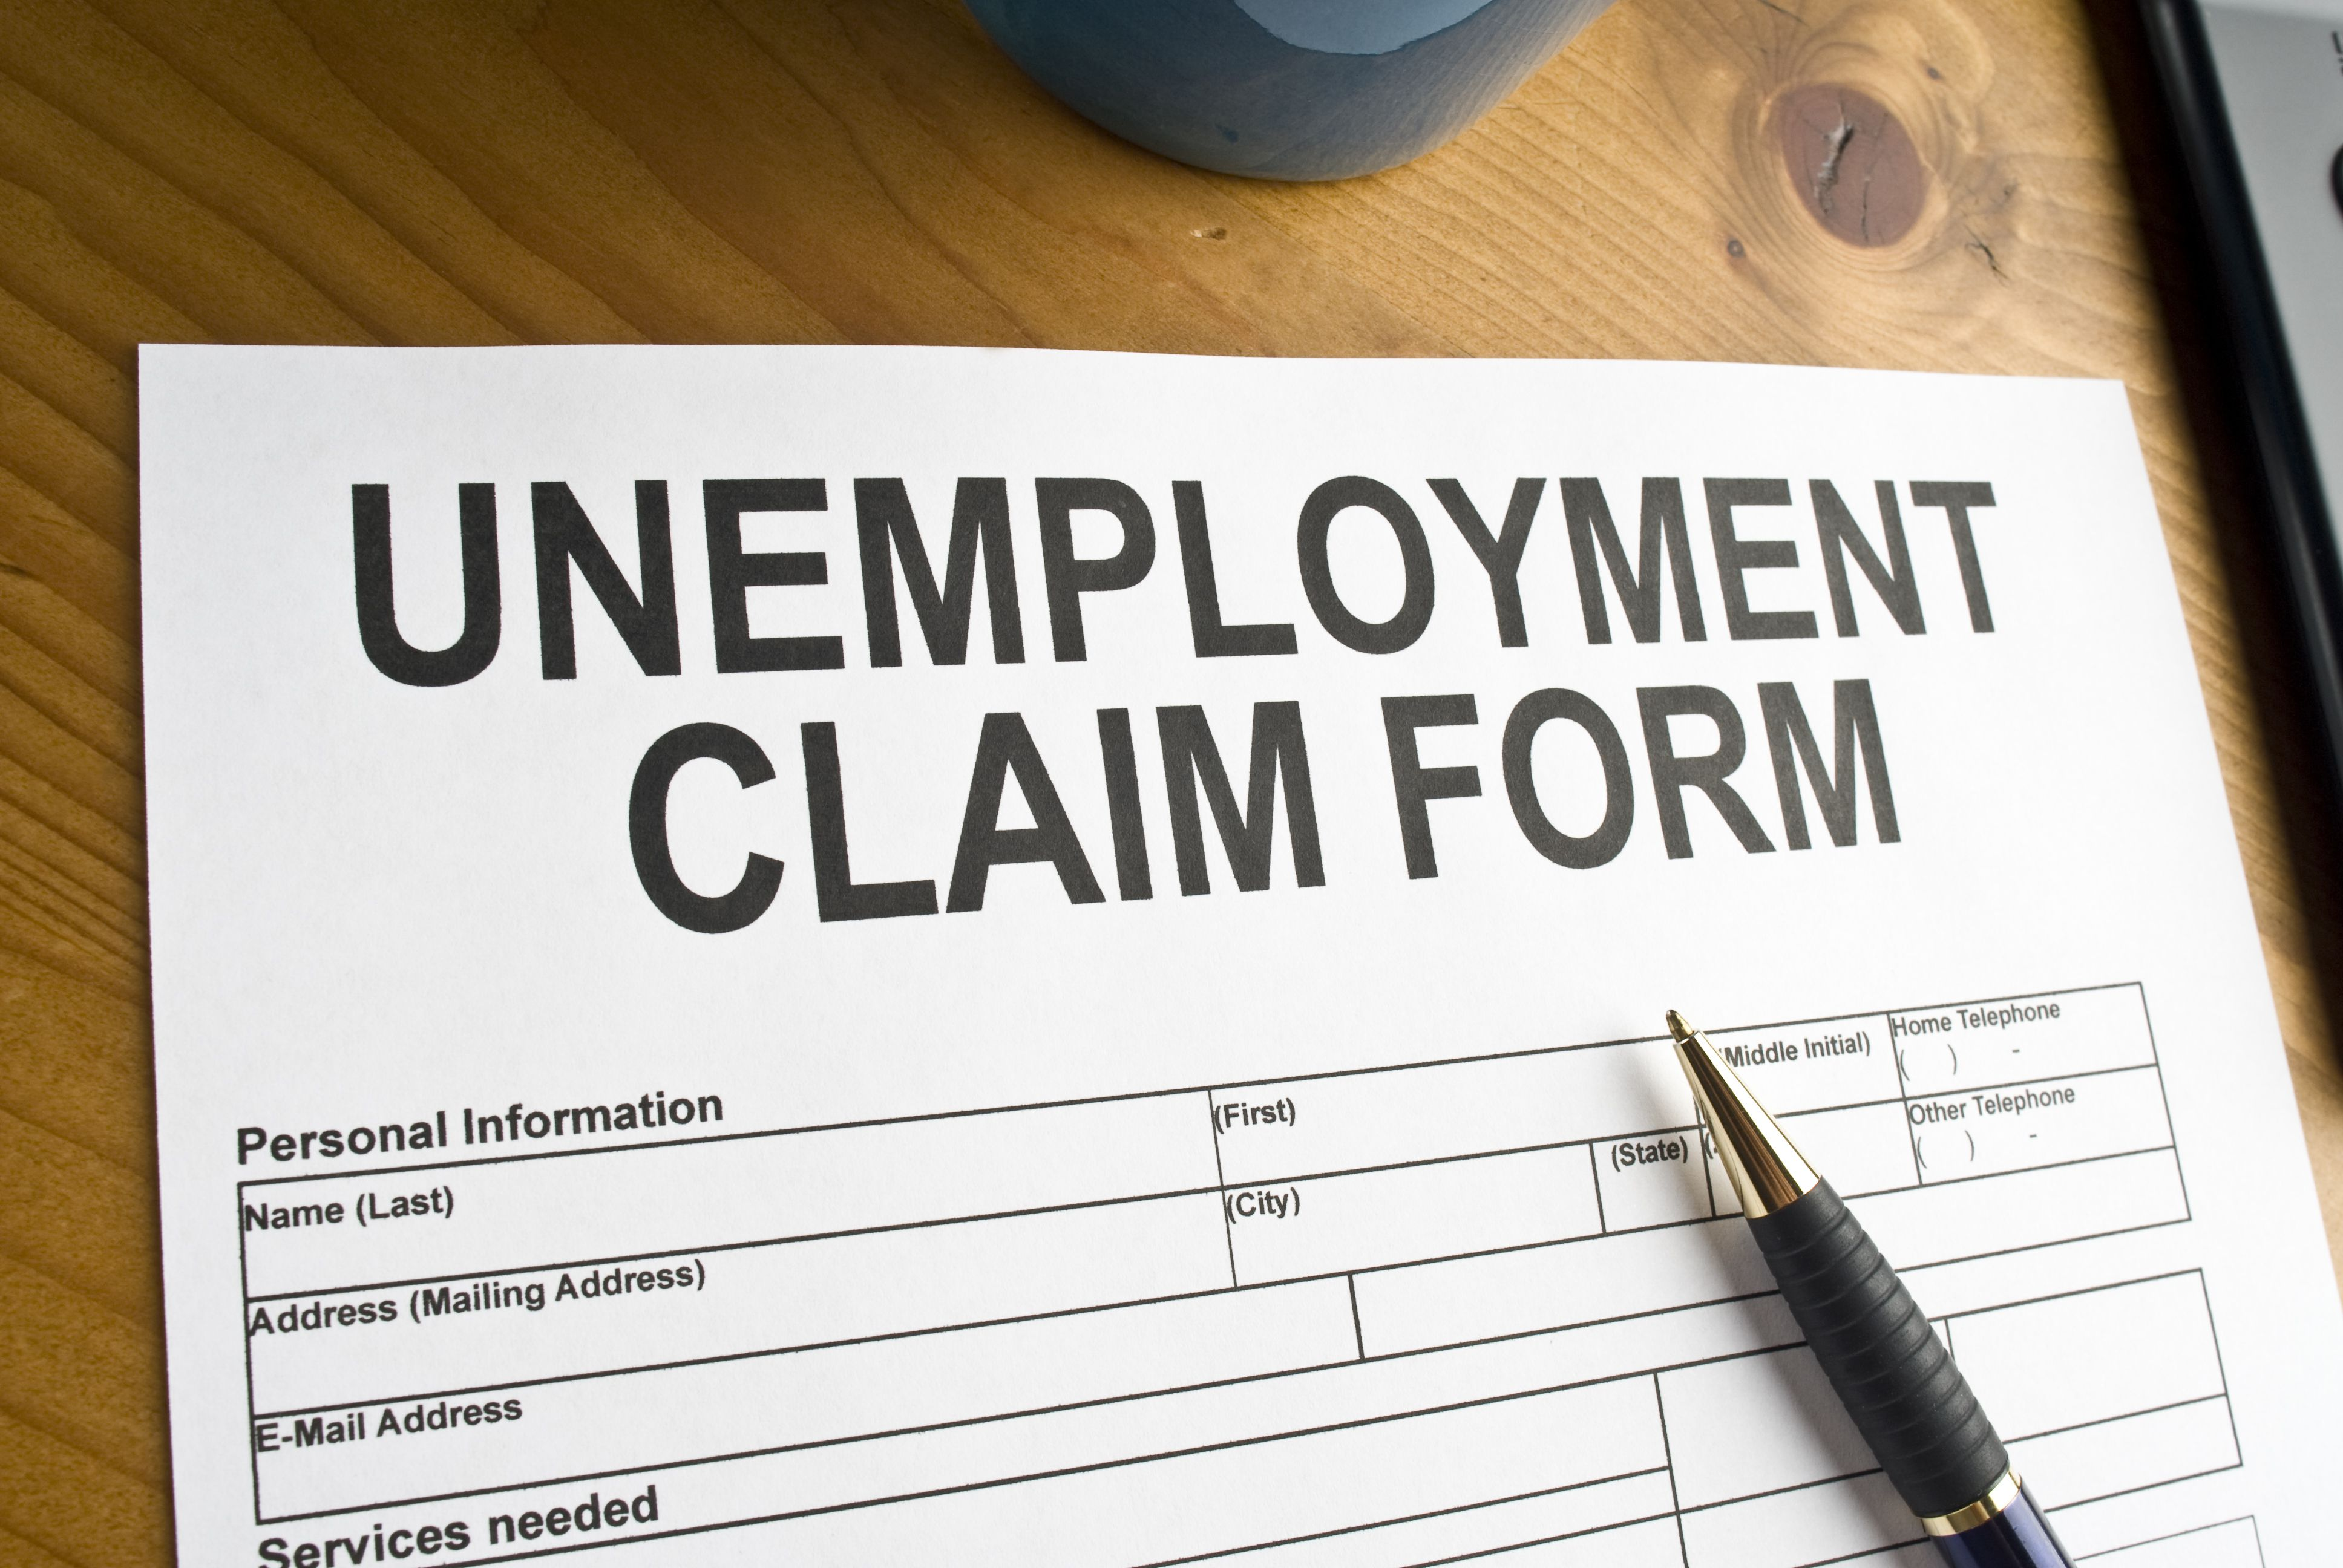 IRS Form 940 Unemployment Tax Report Explained – Unemployment Tax Form